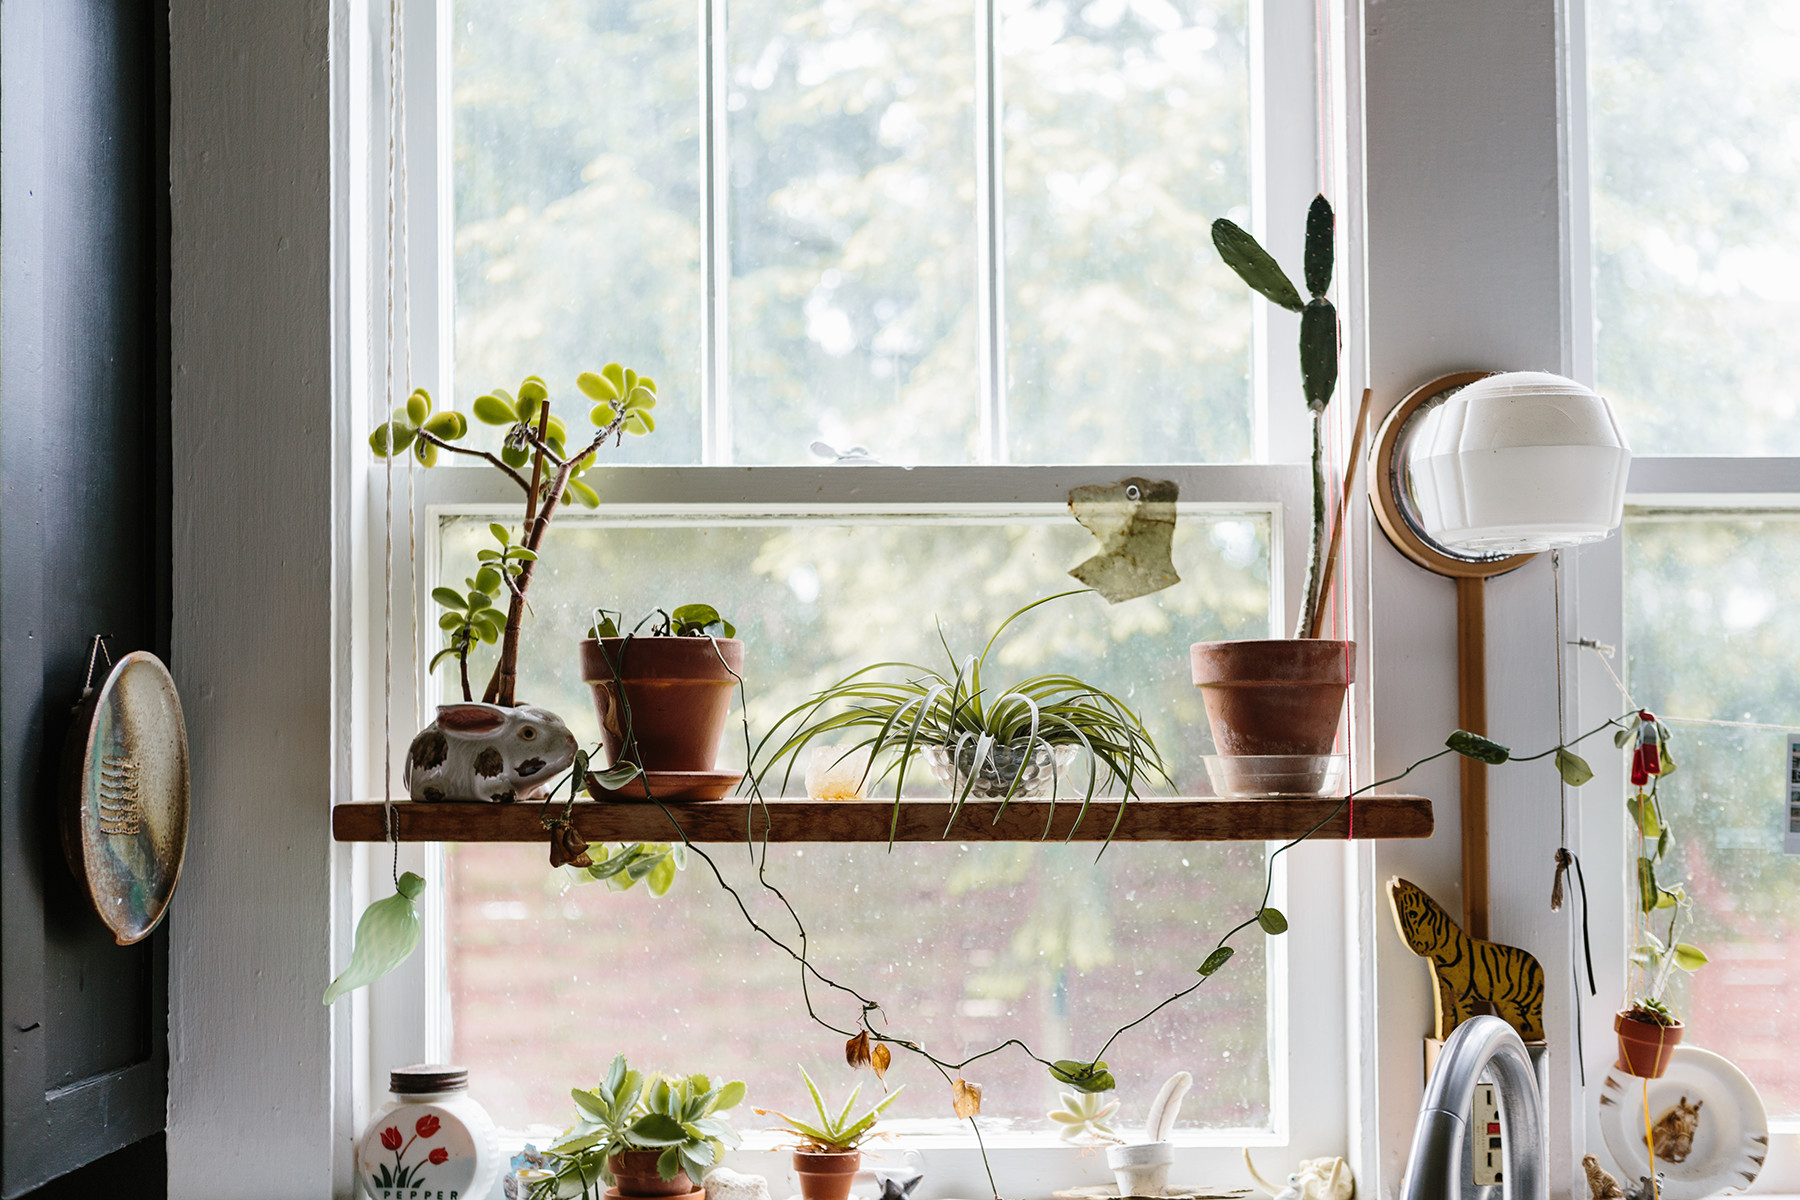 Why Are We So Obsessed With Plants, Anyway?